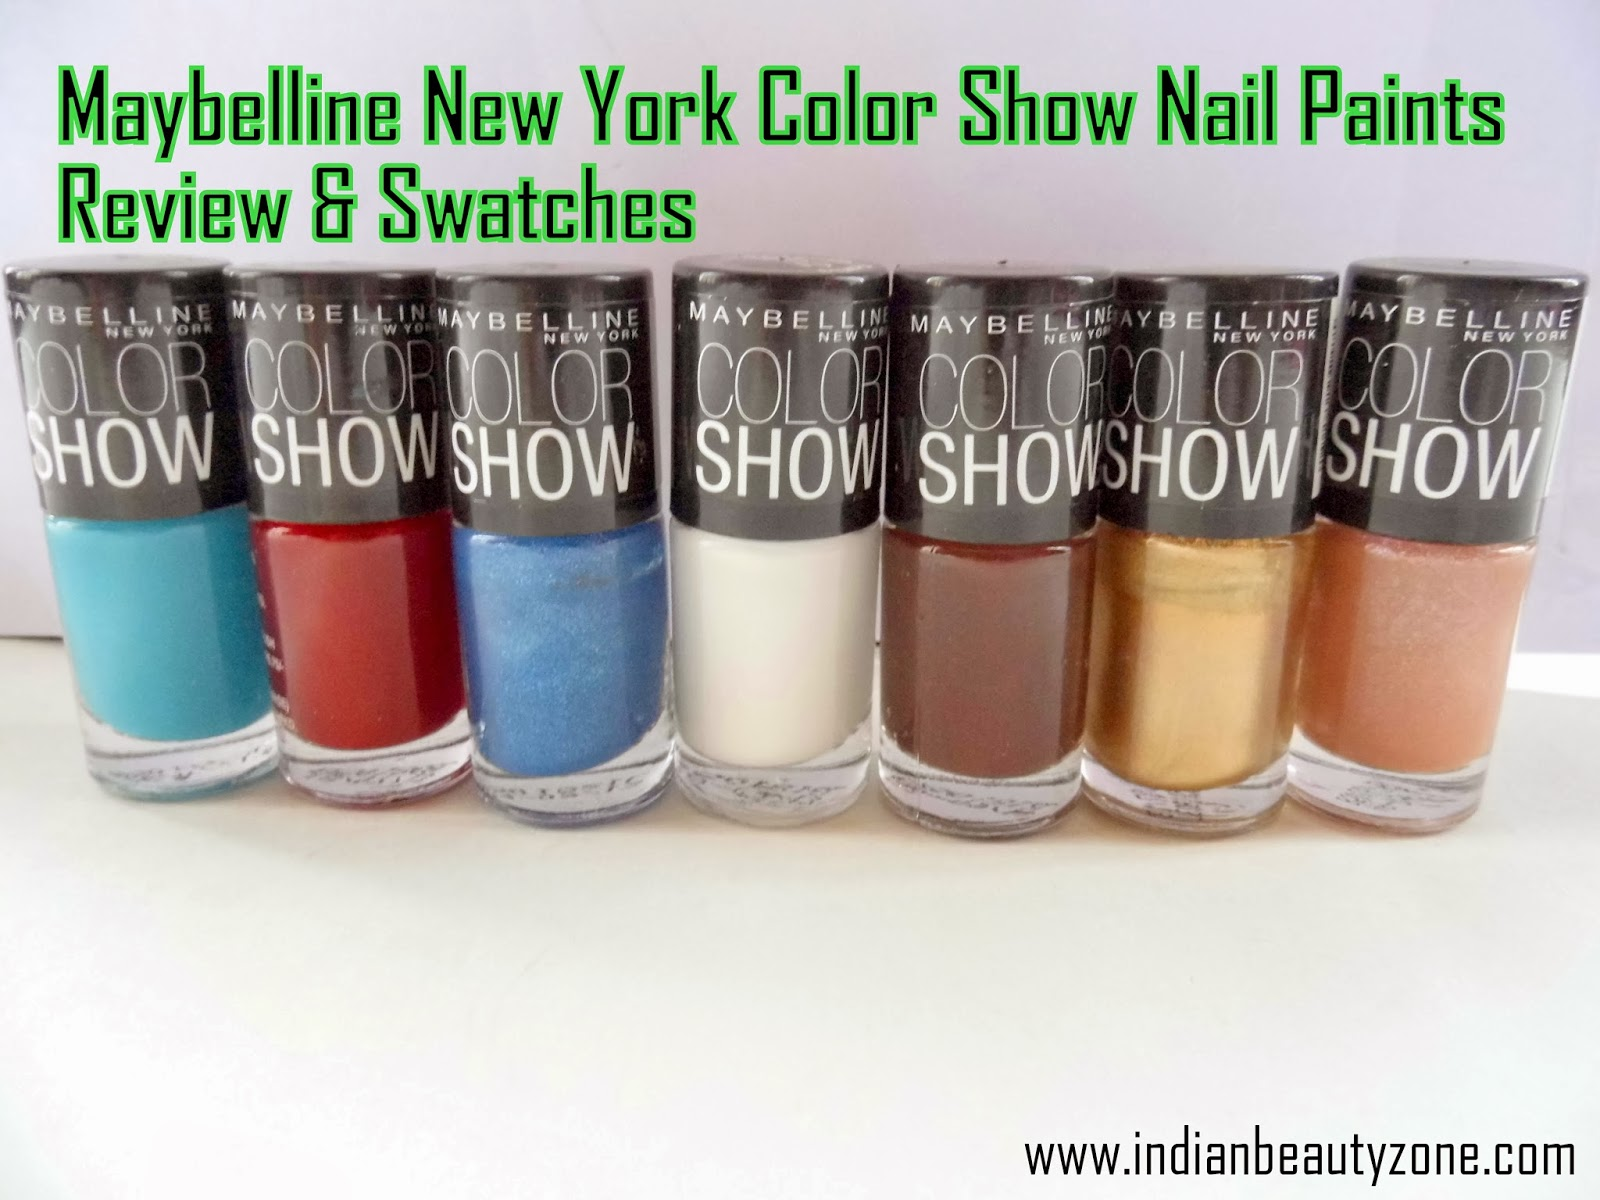 Best affordable nail polishes from Maybelline